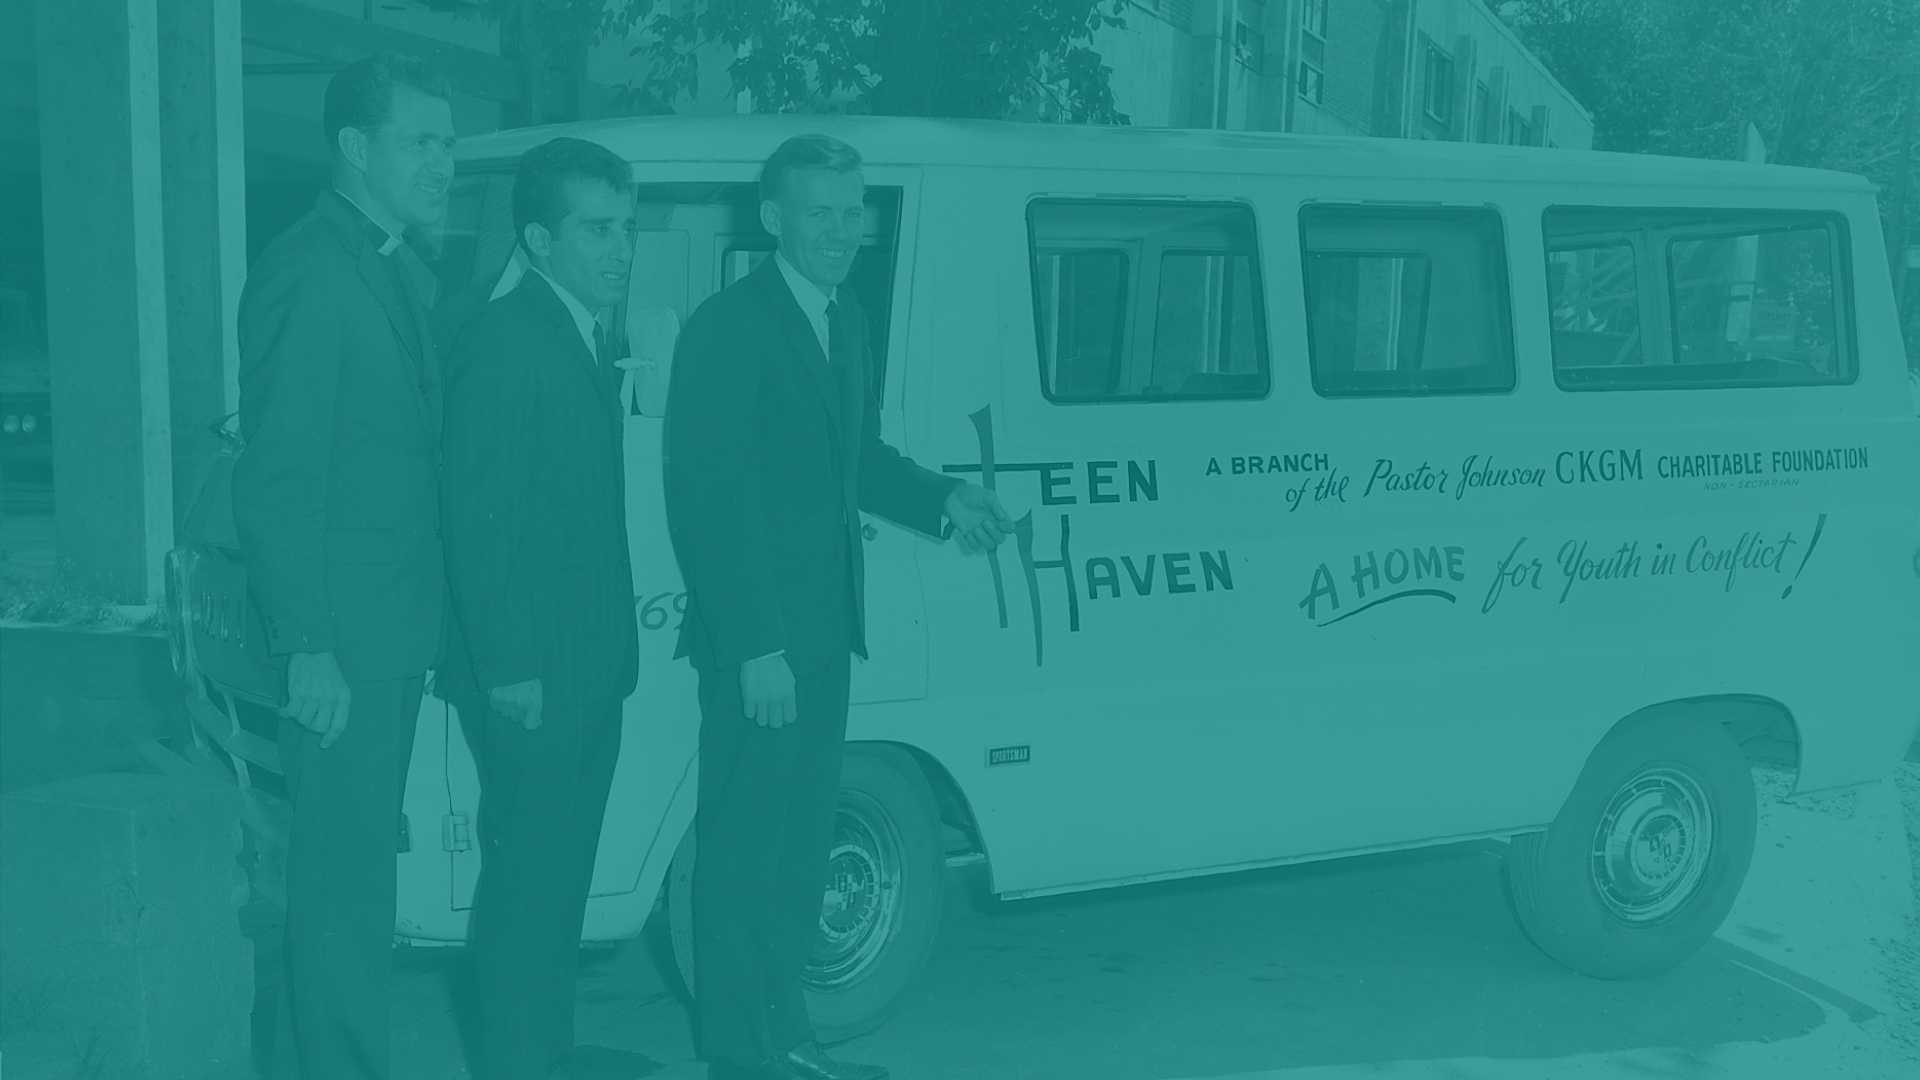 About - Find out more about Teen Haven, ourmission, our methods, and the results of our decades of advocacy.